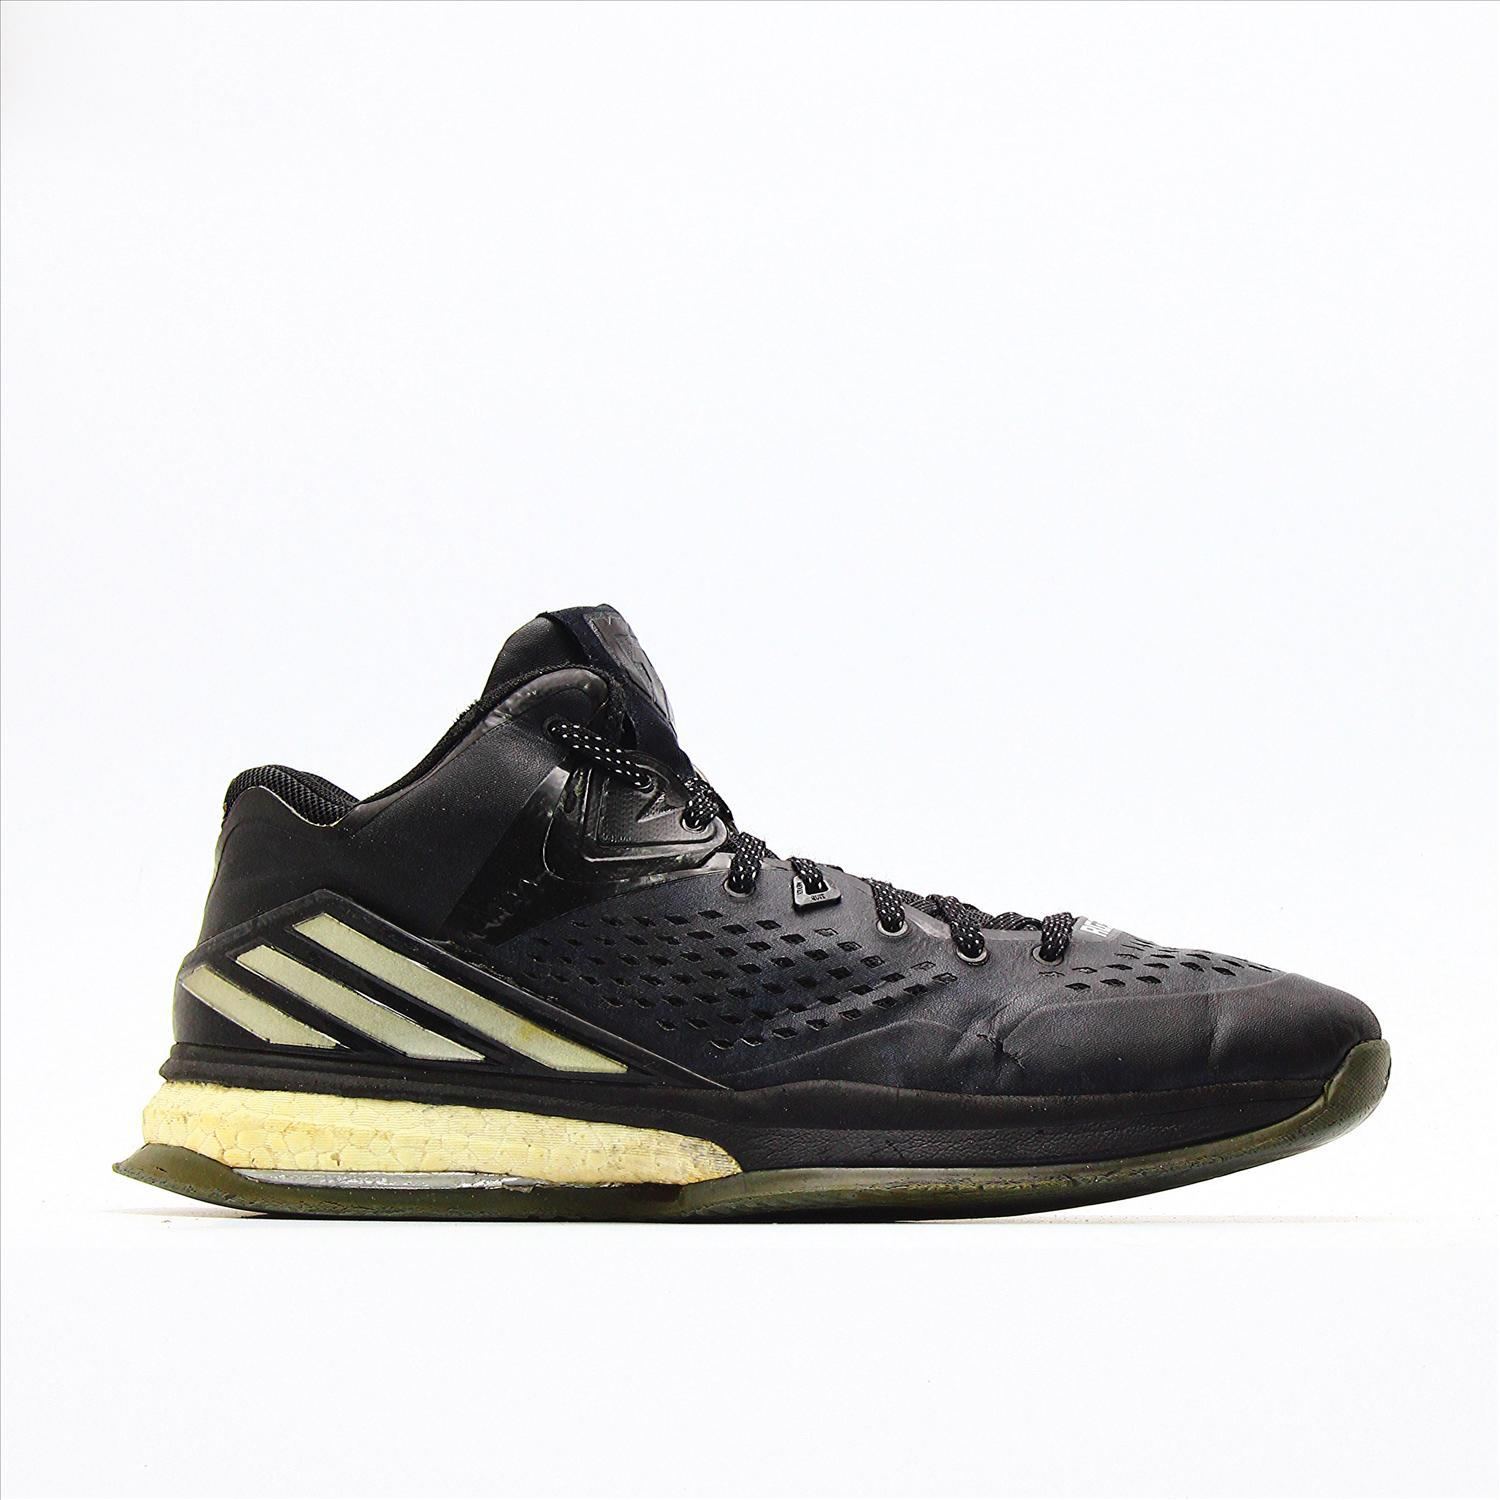 VICTOR Badminton Indoor Court Volleyball Sport Shoes for Men /& Women A362 FA CS